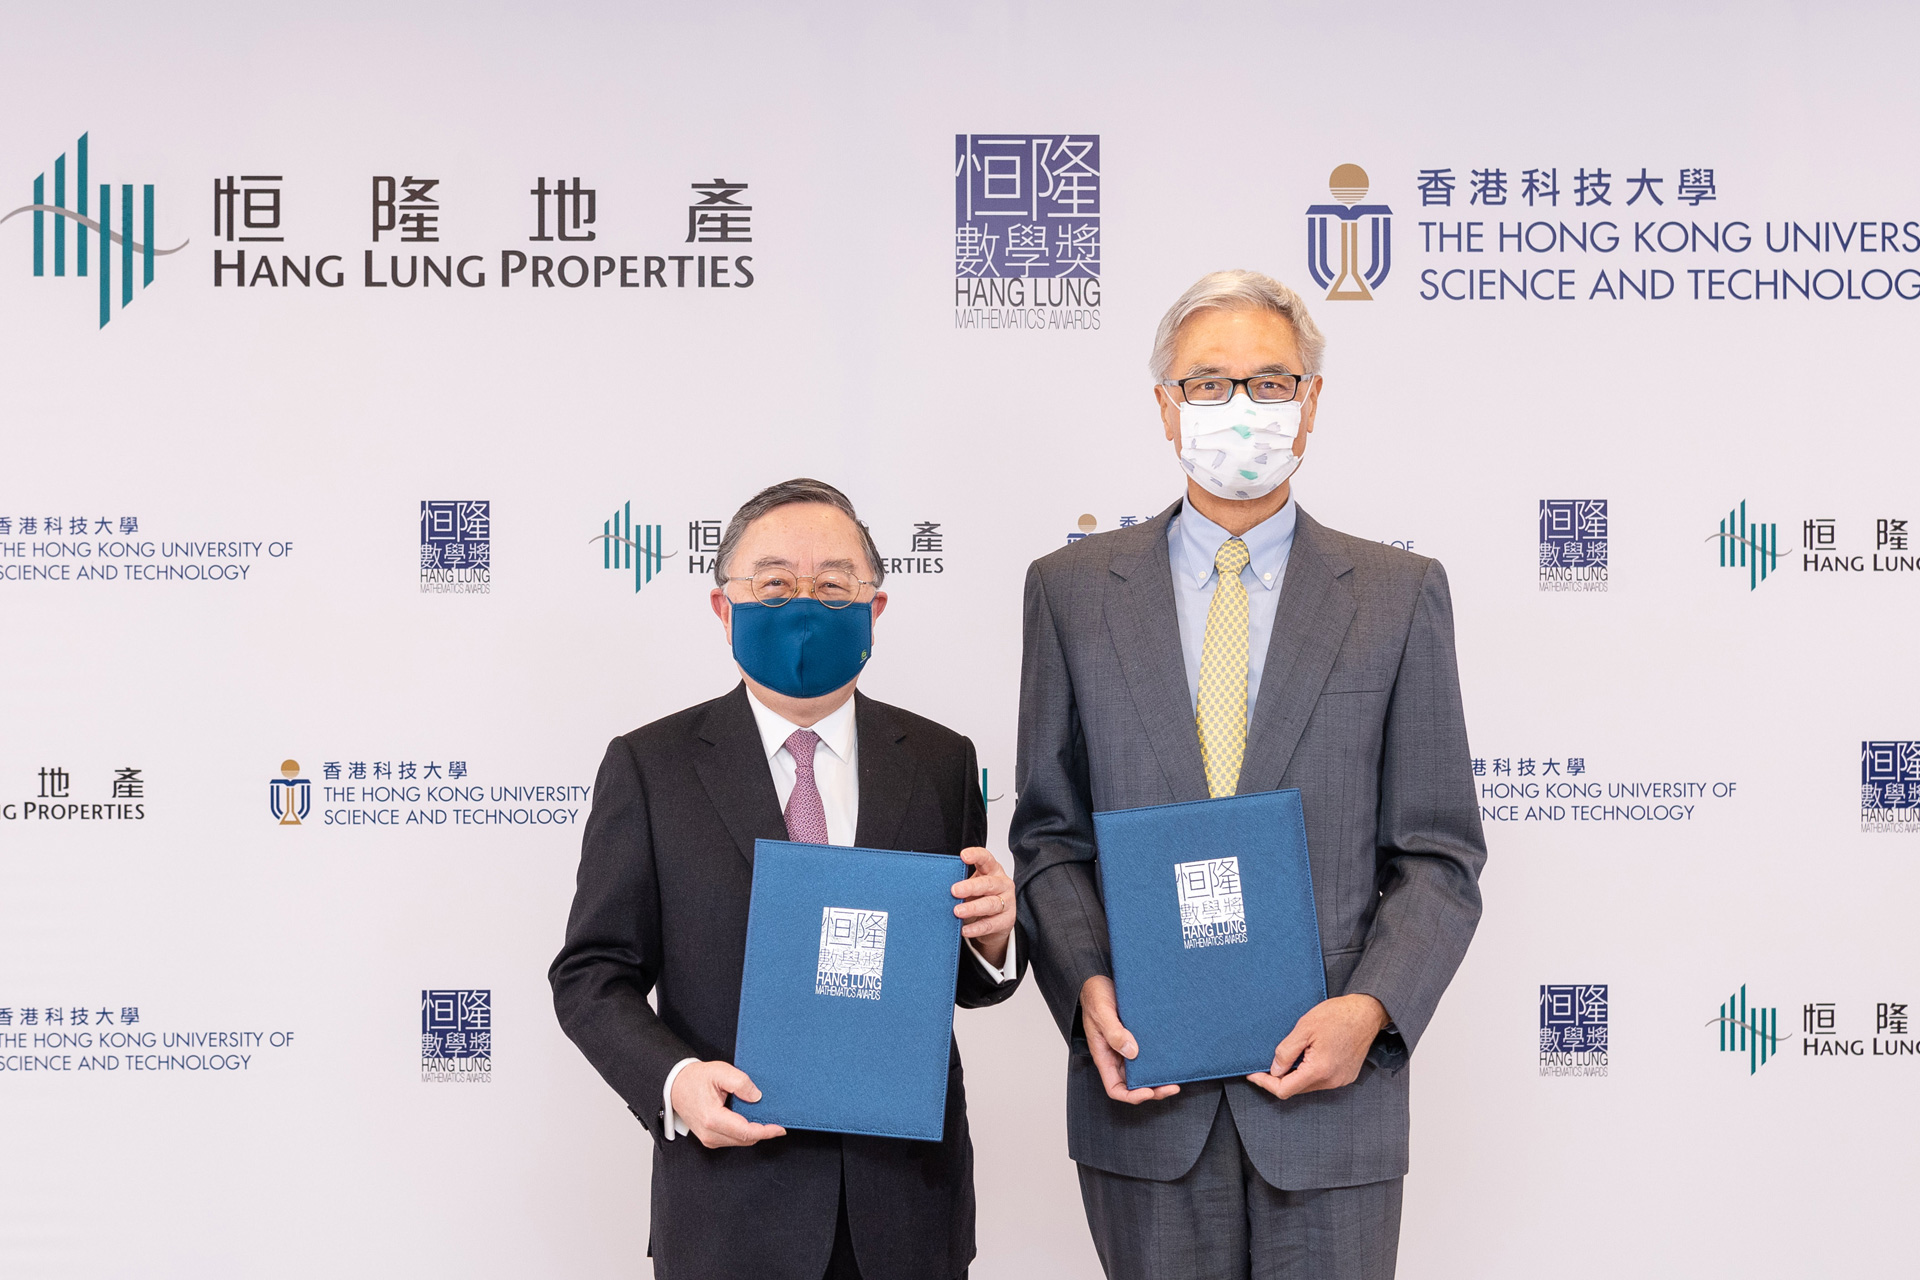 Hang Lung Collaborates with The Hong Kong University of Science and Technology to Foster Young Mathematics Talents